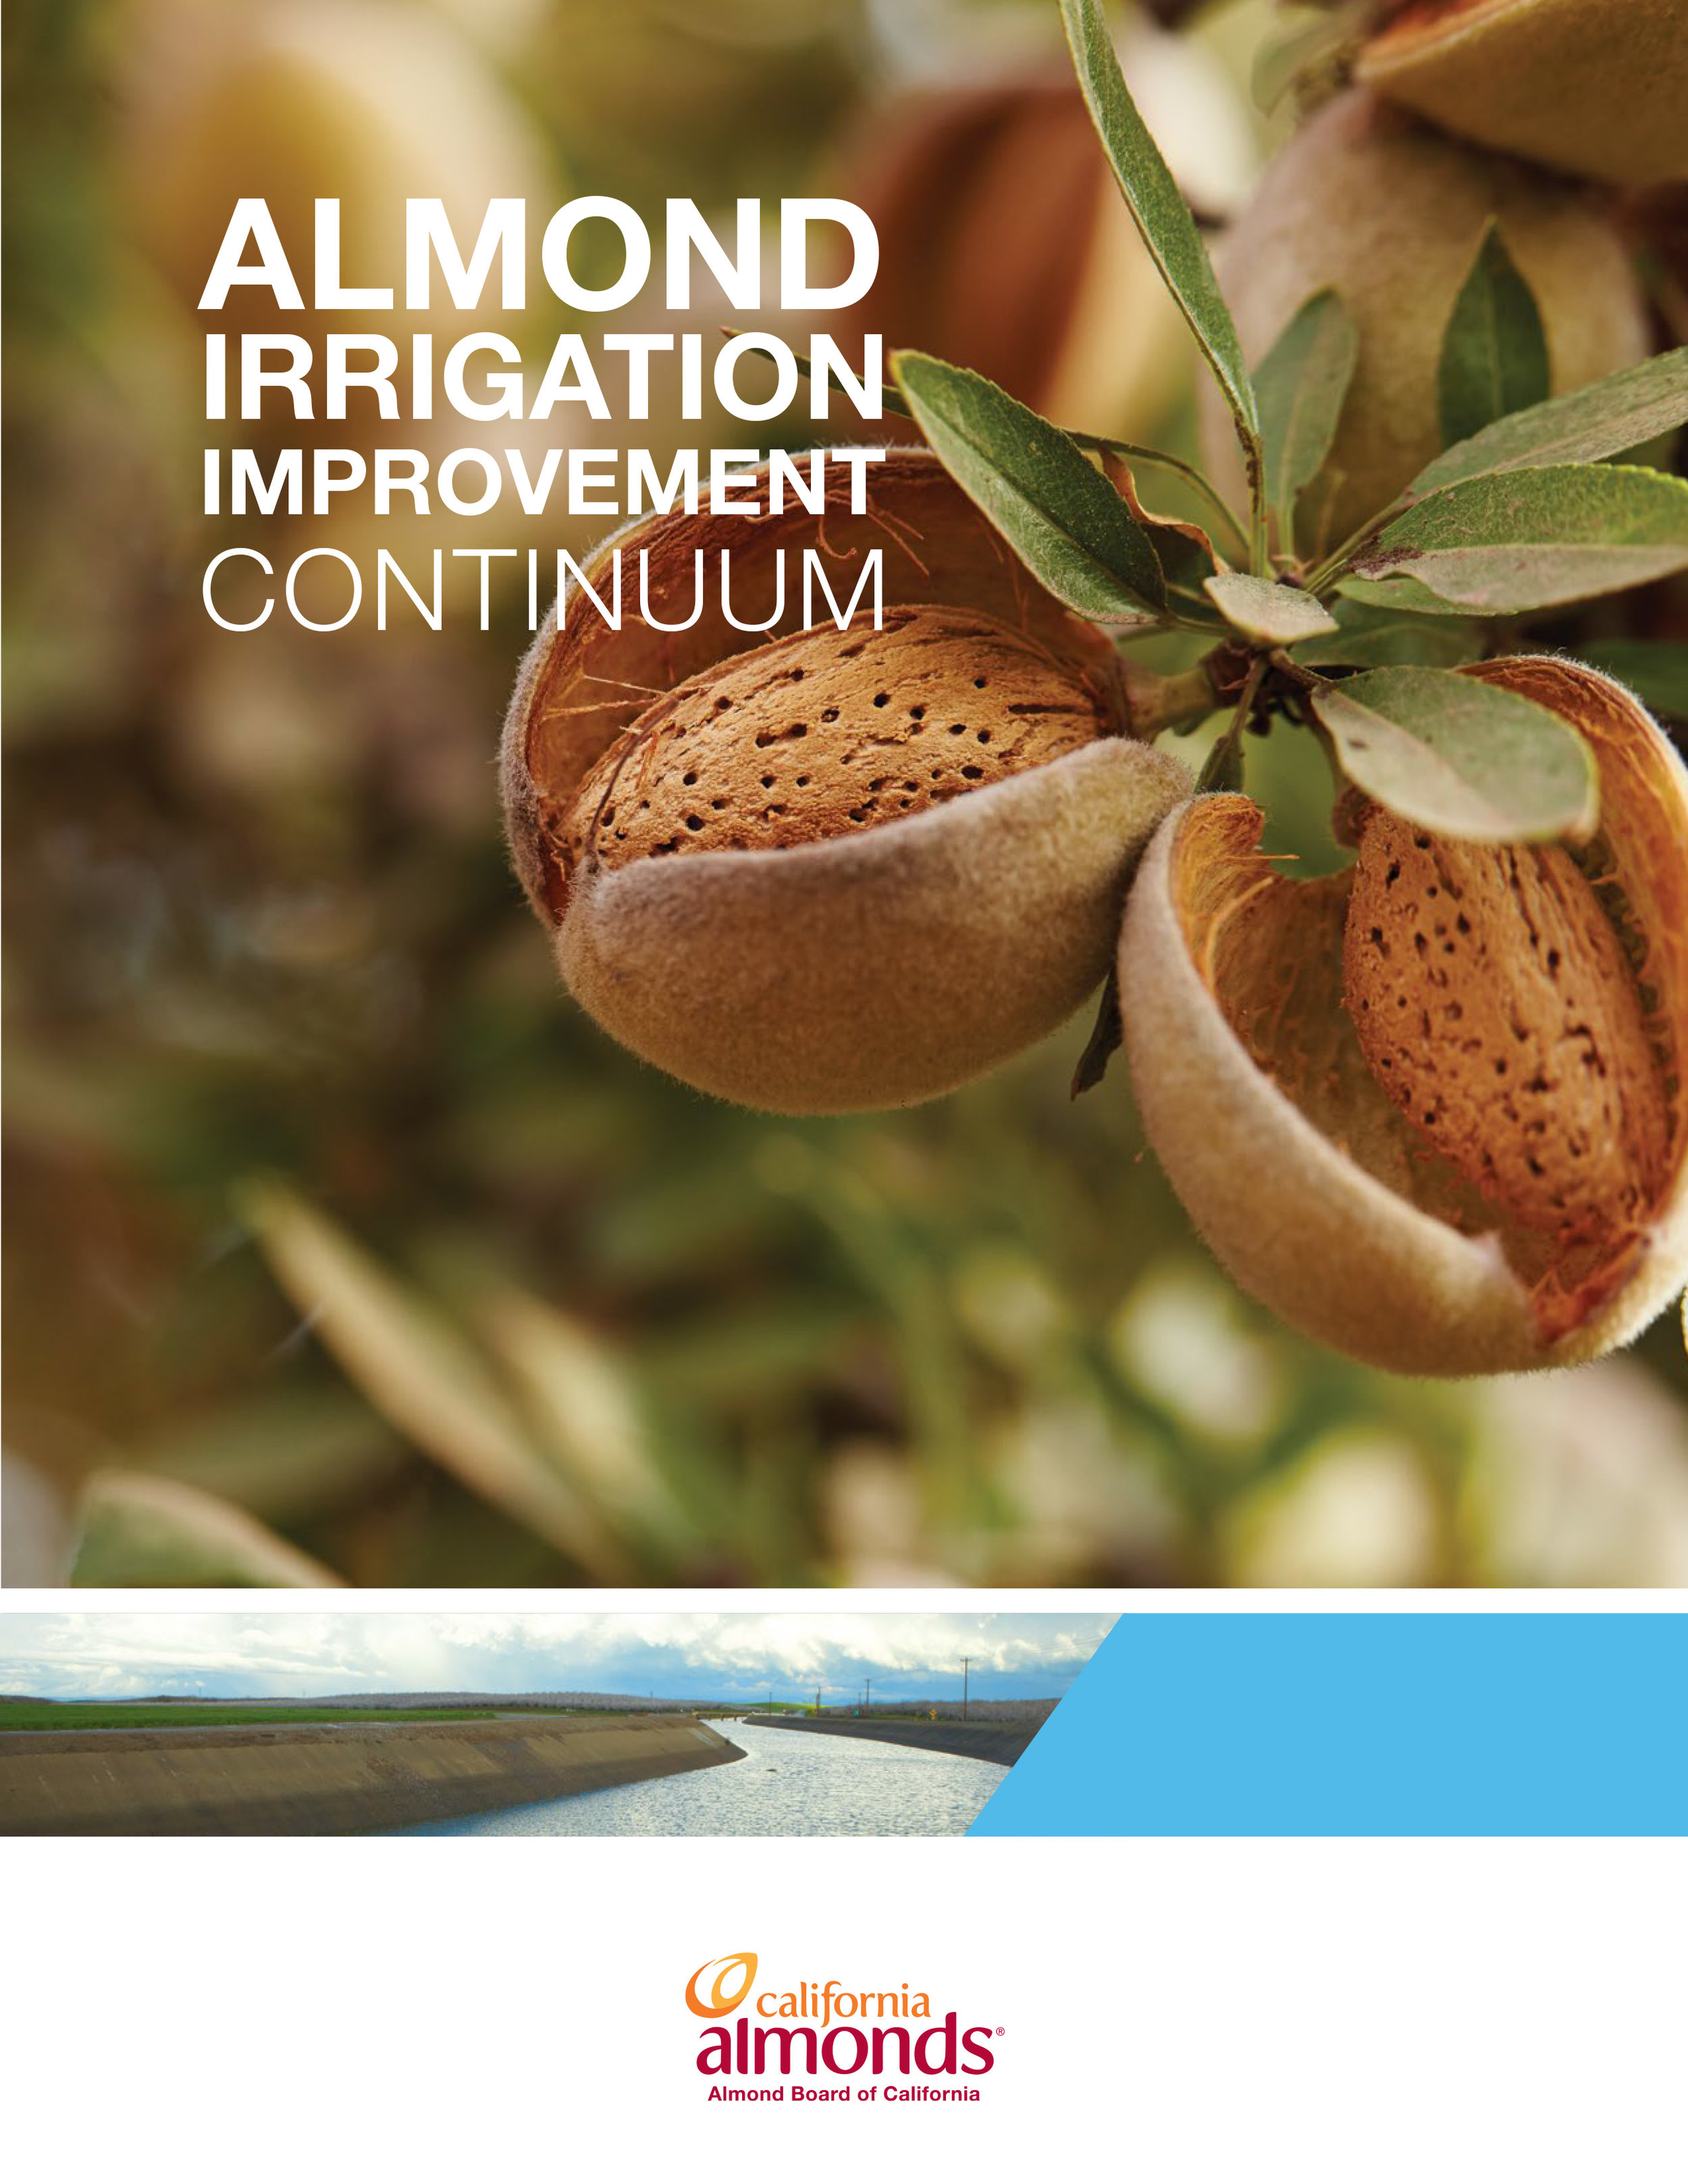 - You can find out more about the ABC's irrigation continuum at http://www.almonds.com/irrigation